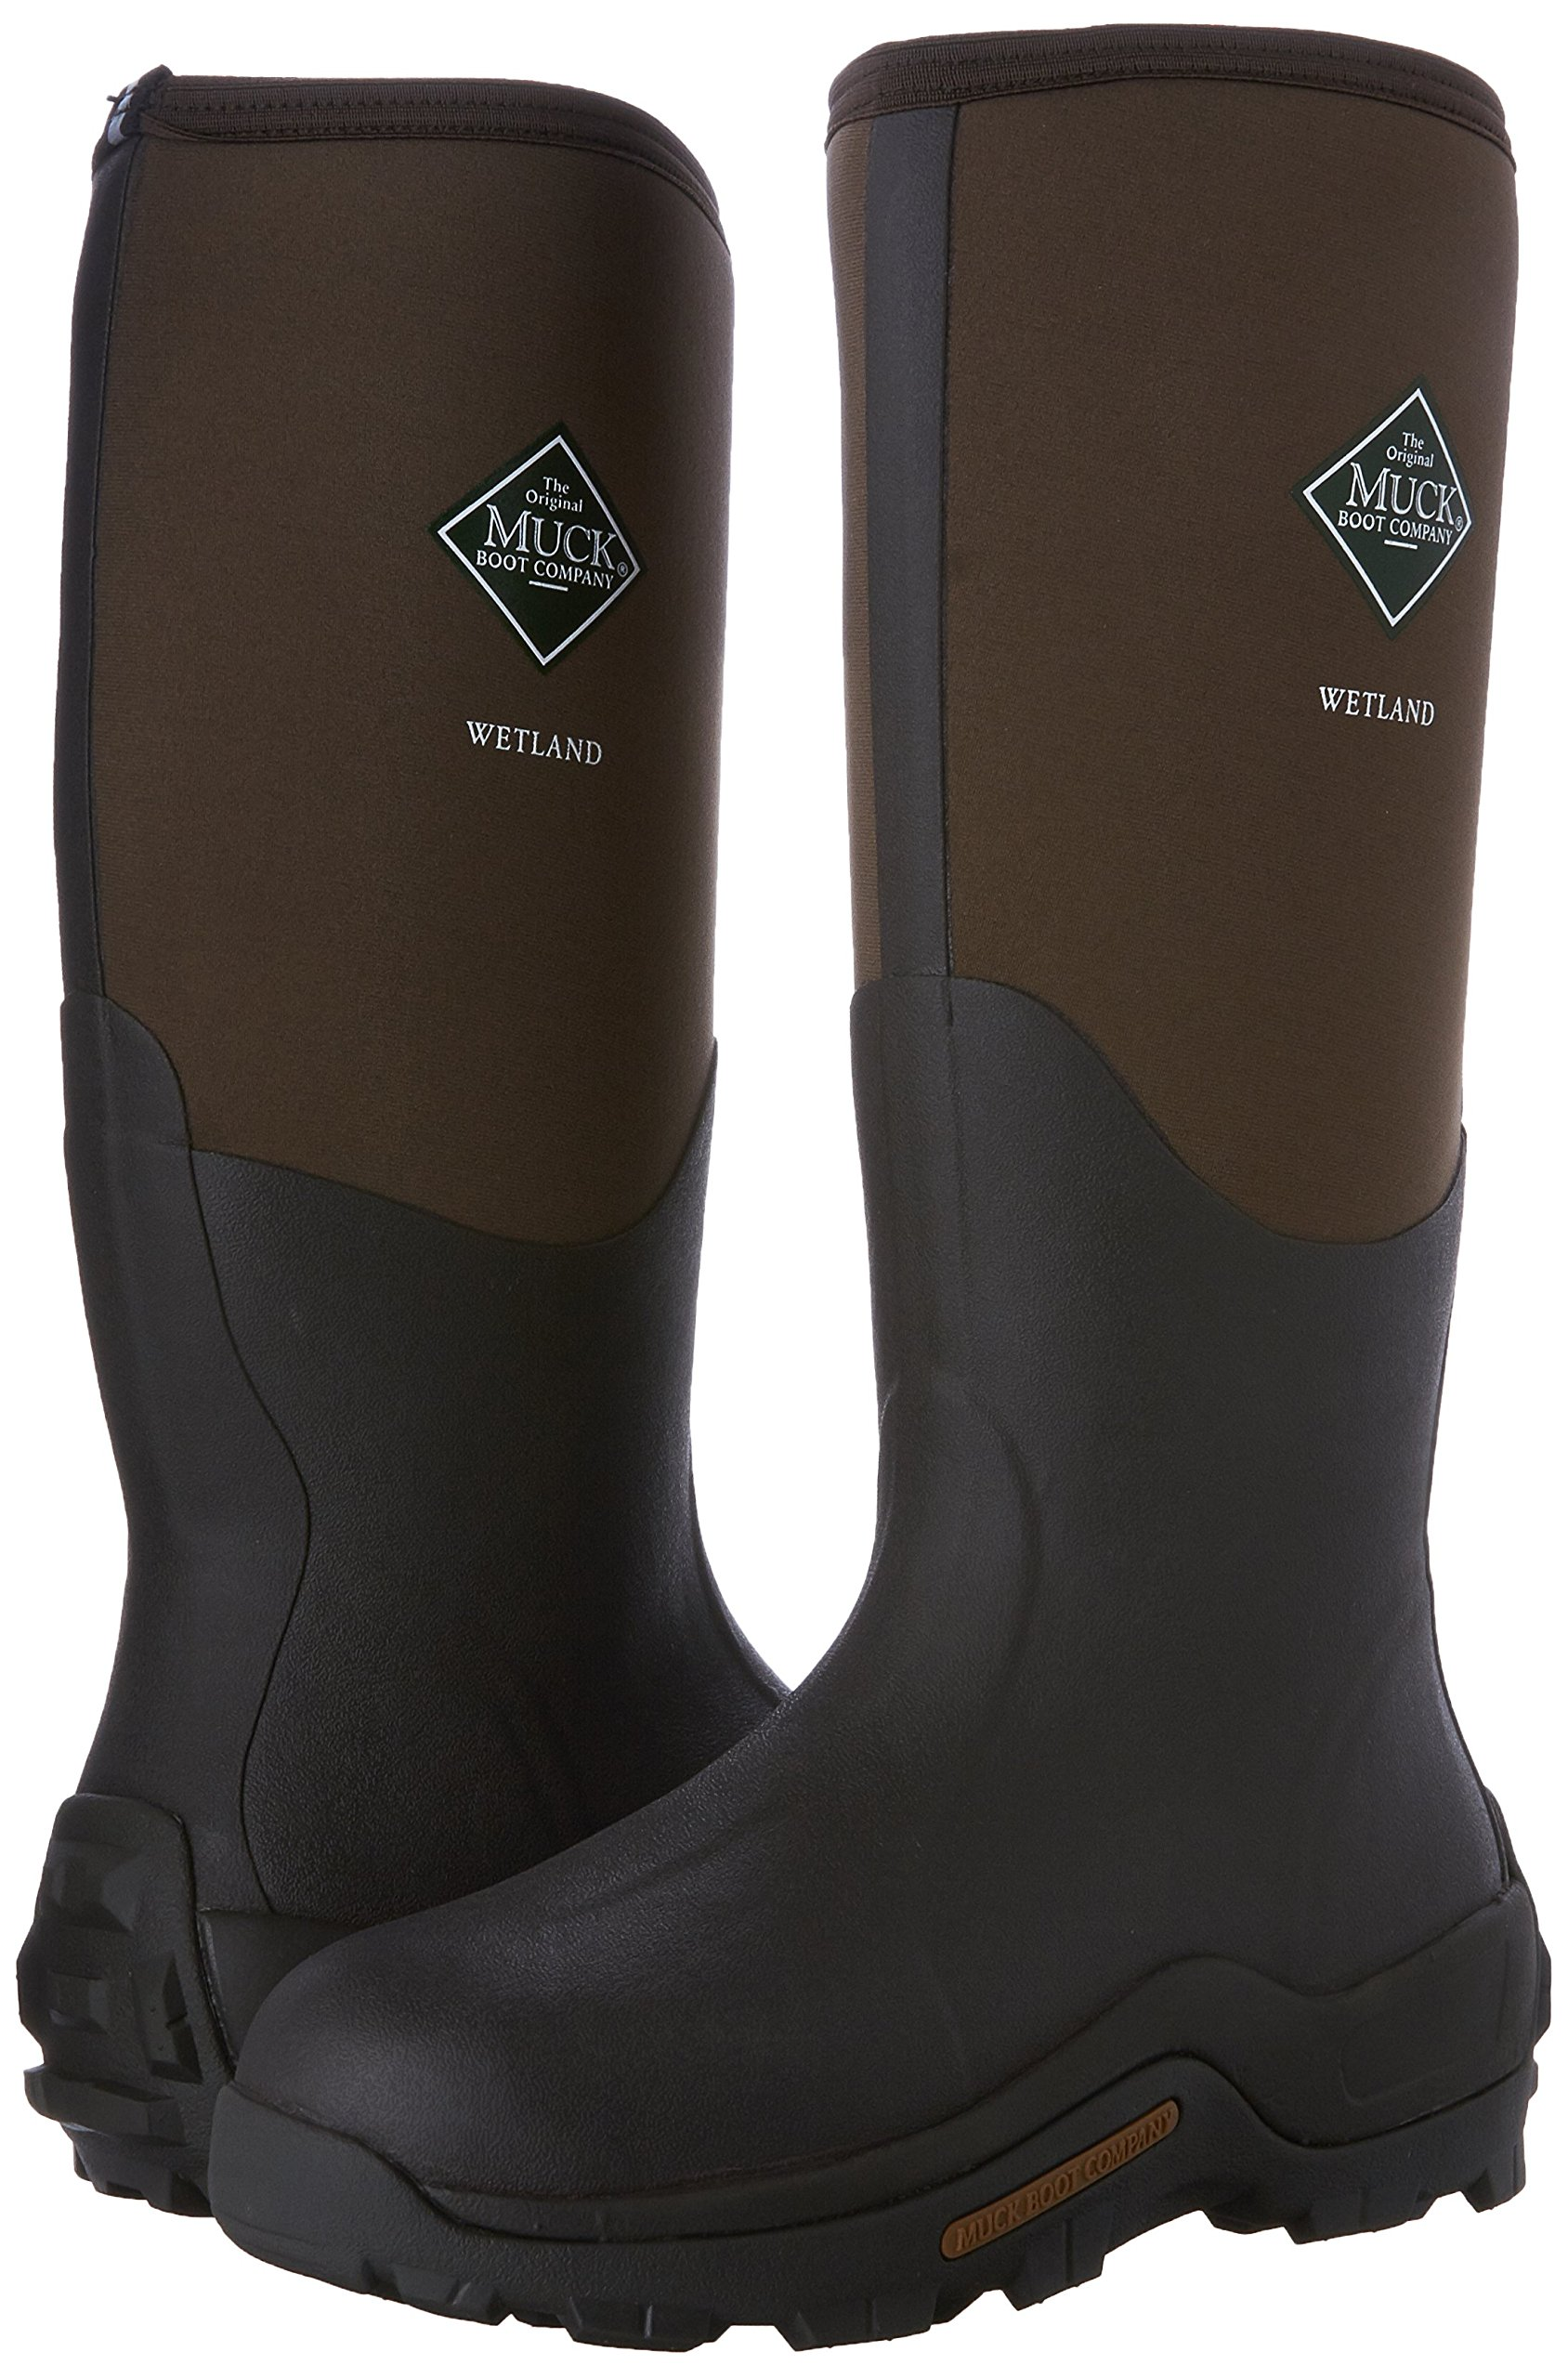 Muck Wetland Rubber Premium Men's Field Boots,Bark,Men's 14 M/Women's 15 M by Muck Boot (Image #6)